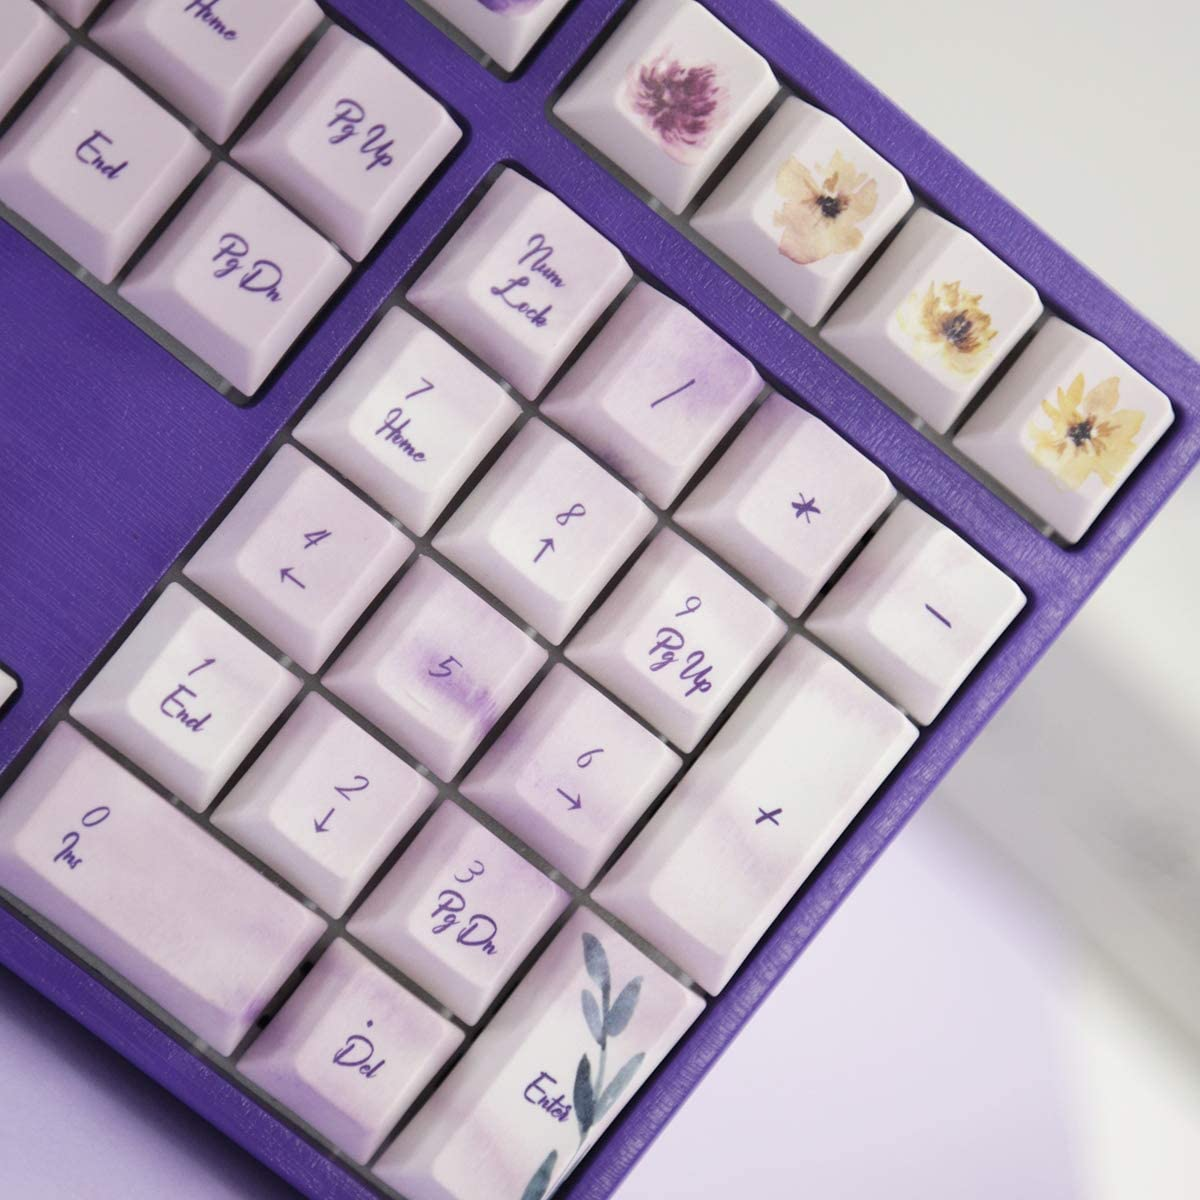 108 and 125 Typography Suitable for Cherry MX Switch,1 SSSLG PBT Keycap Cherry Height Violet Pattern